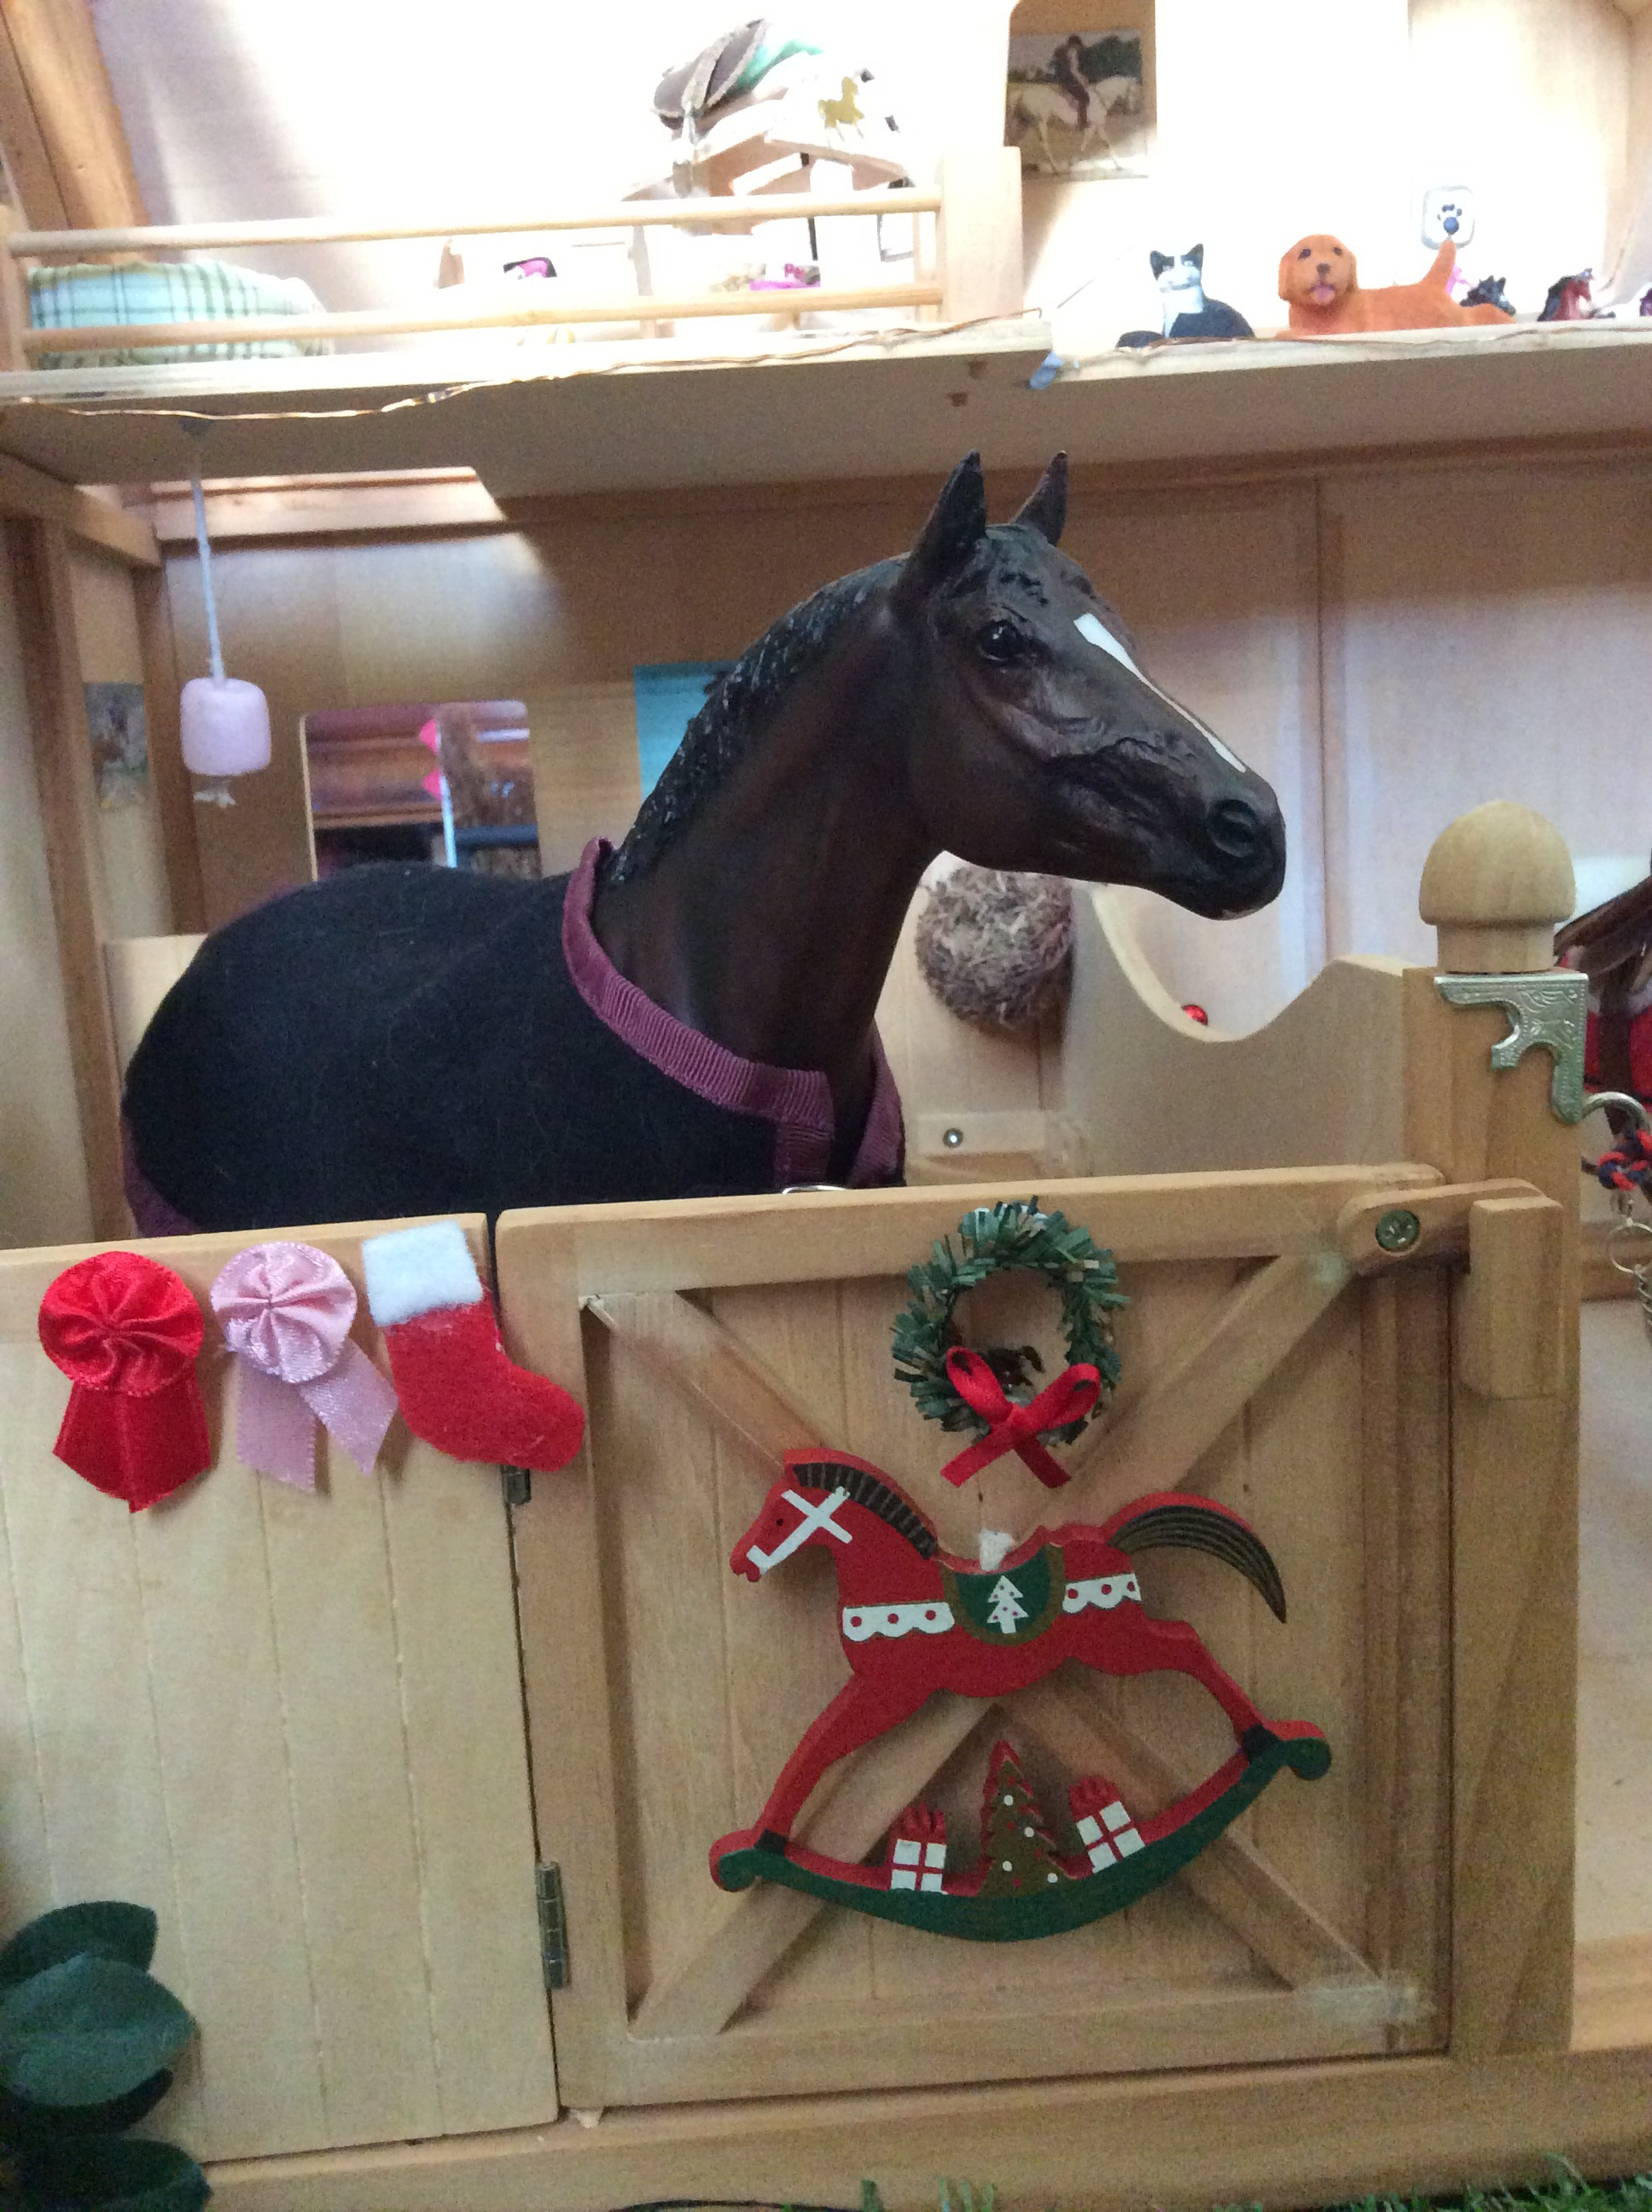 the main barn has lights red bauble string and a tree wapiti and hickstead both have stockings wreaths and a christmas rocking horse decoration